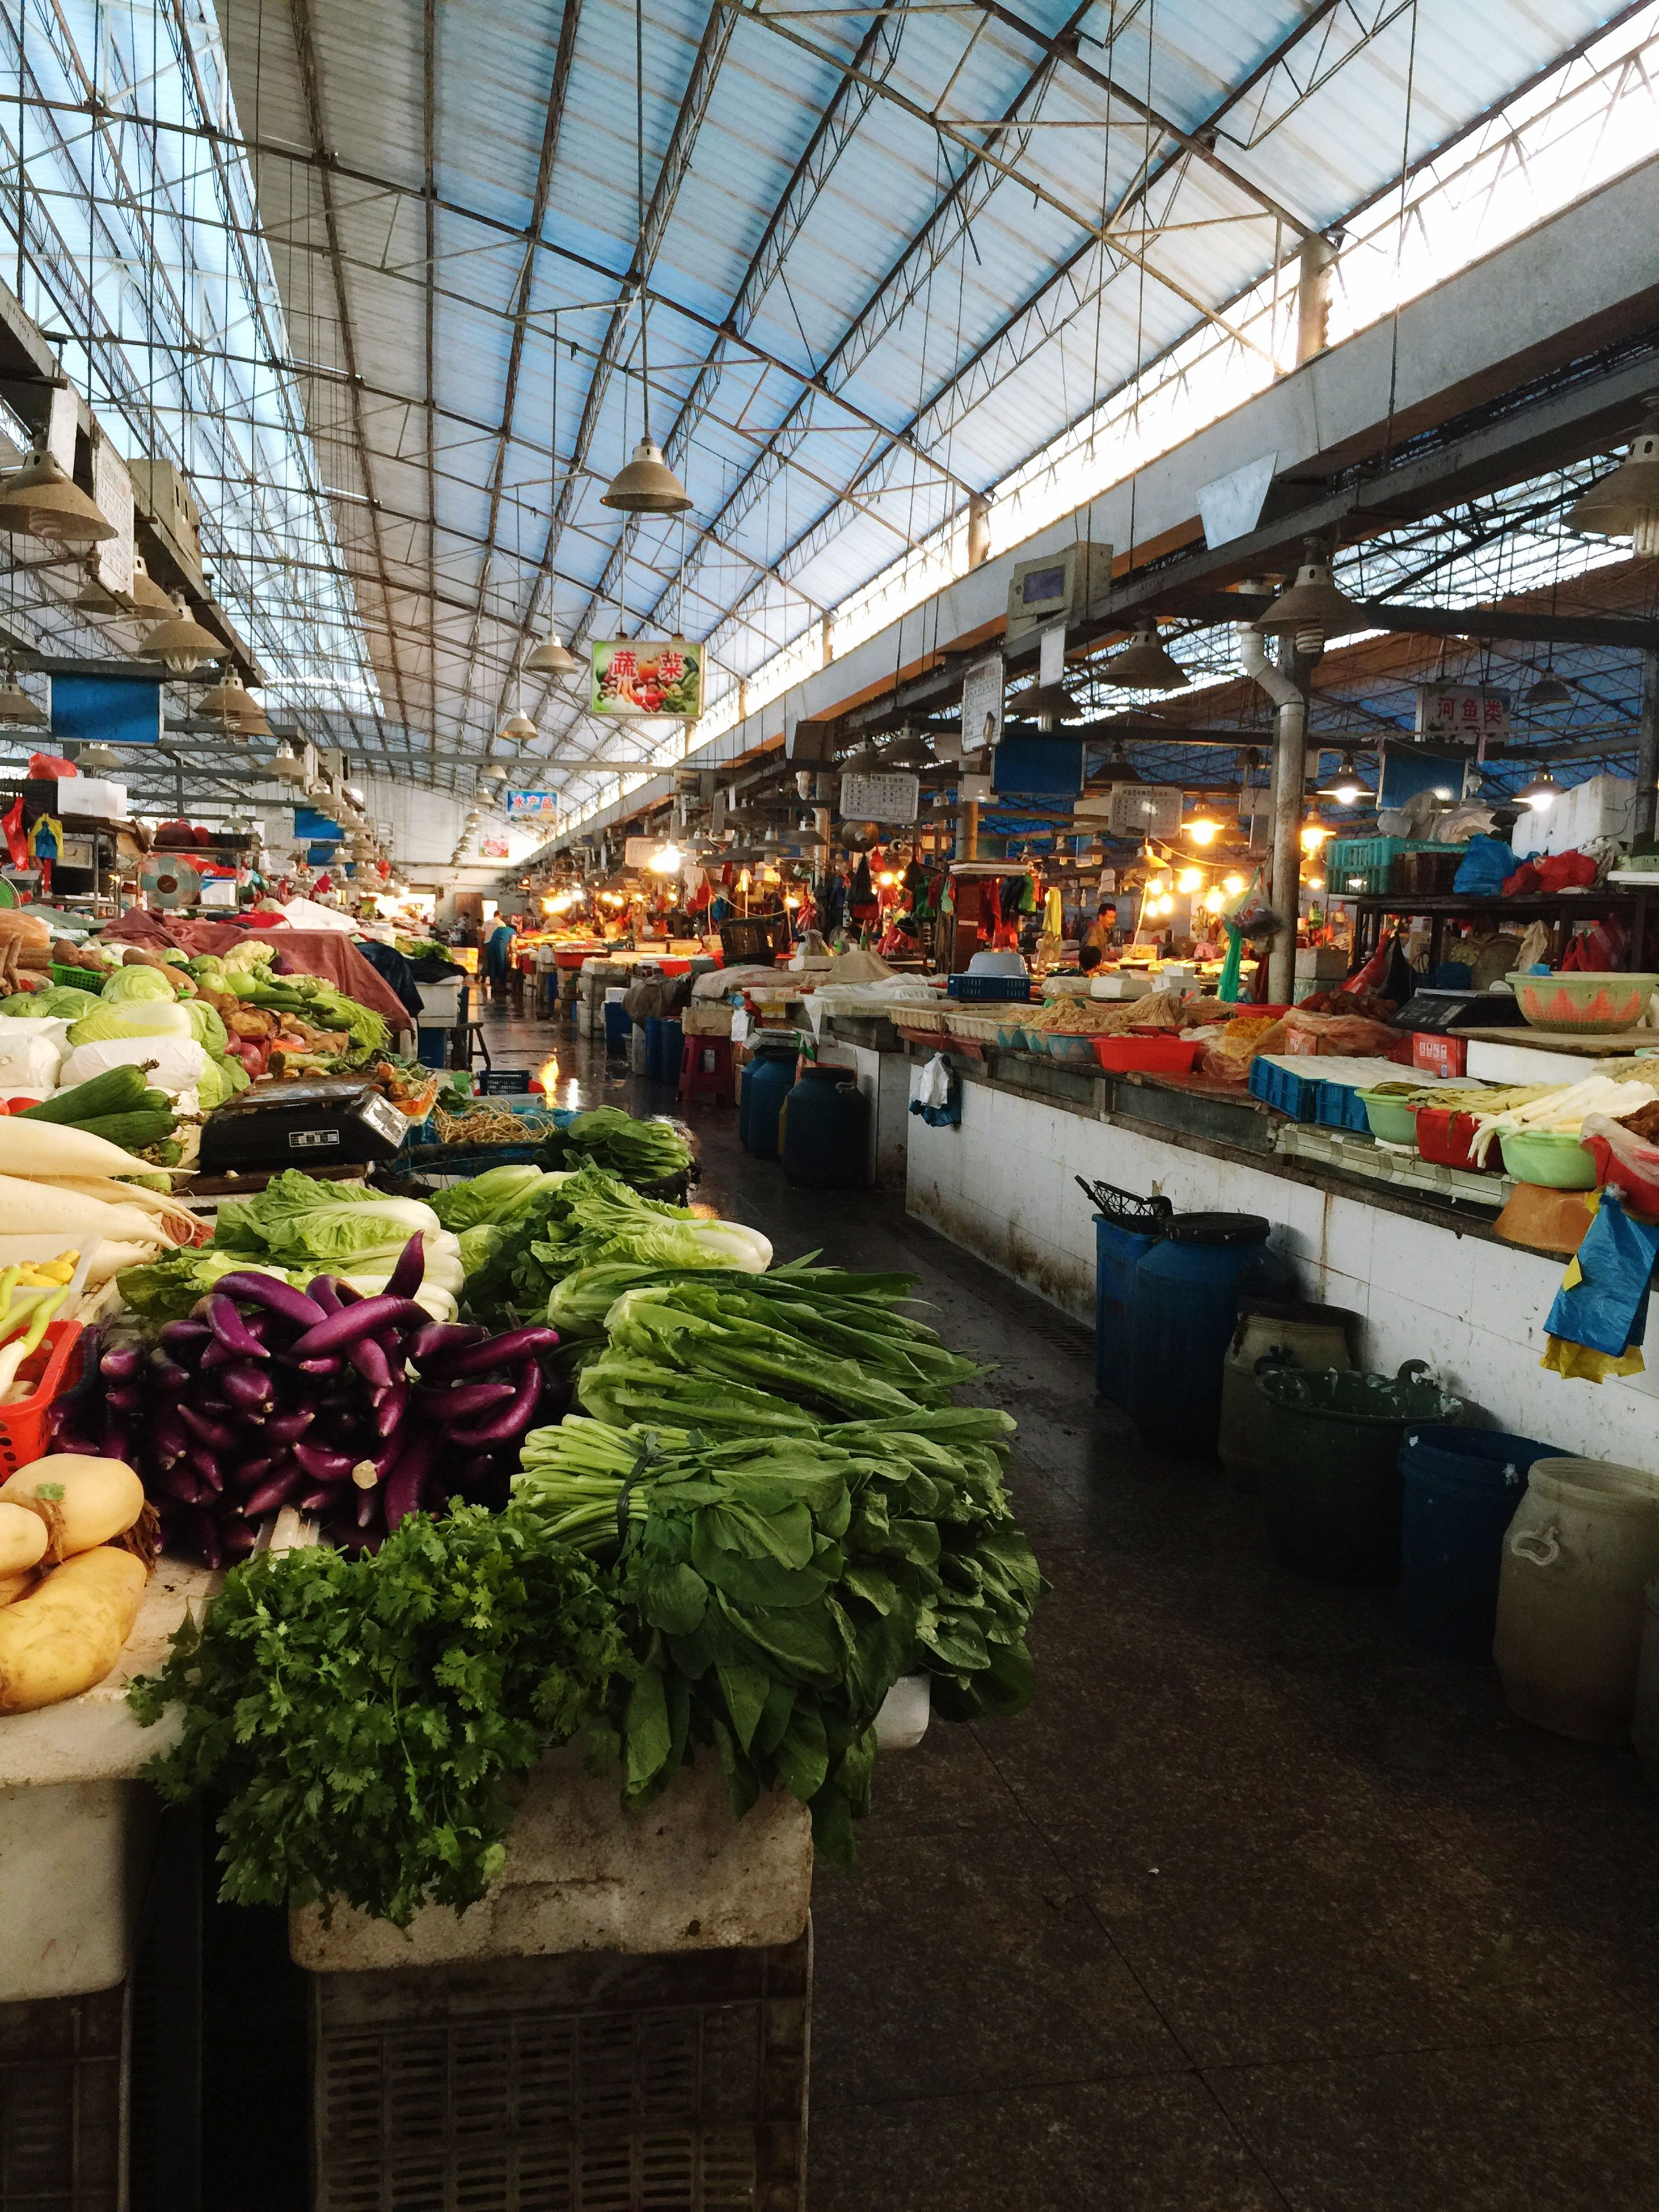 market, retail, market stall, transportation, for sale, city, incidental people, architecture, abundance, store, city life, built structure, mode of transport, choice, consumerism, building exterior, food and drink, large group of objects, shopping, street